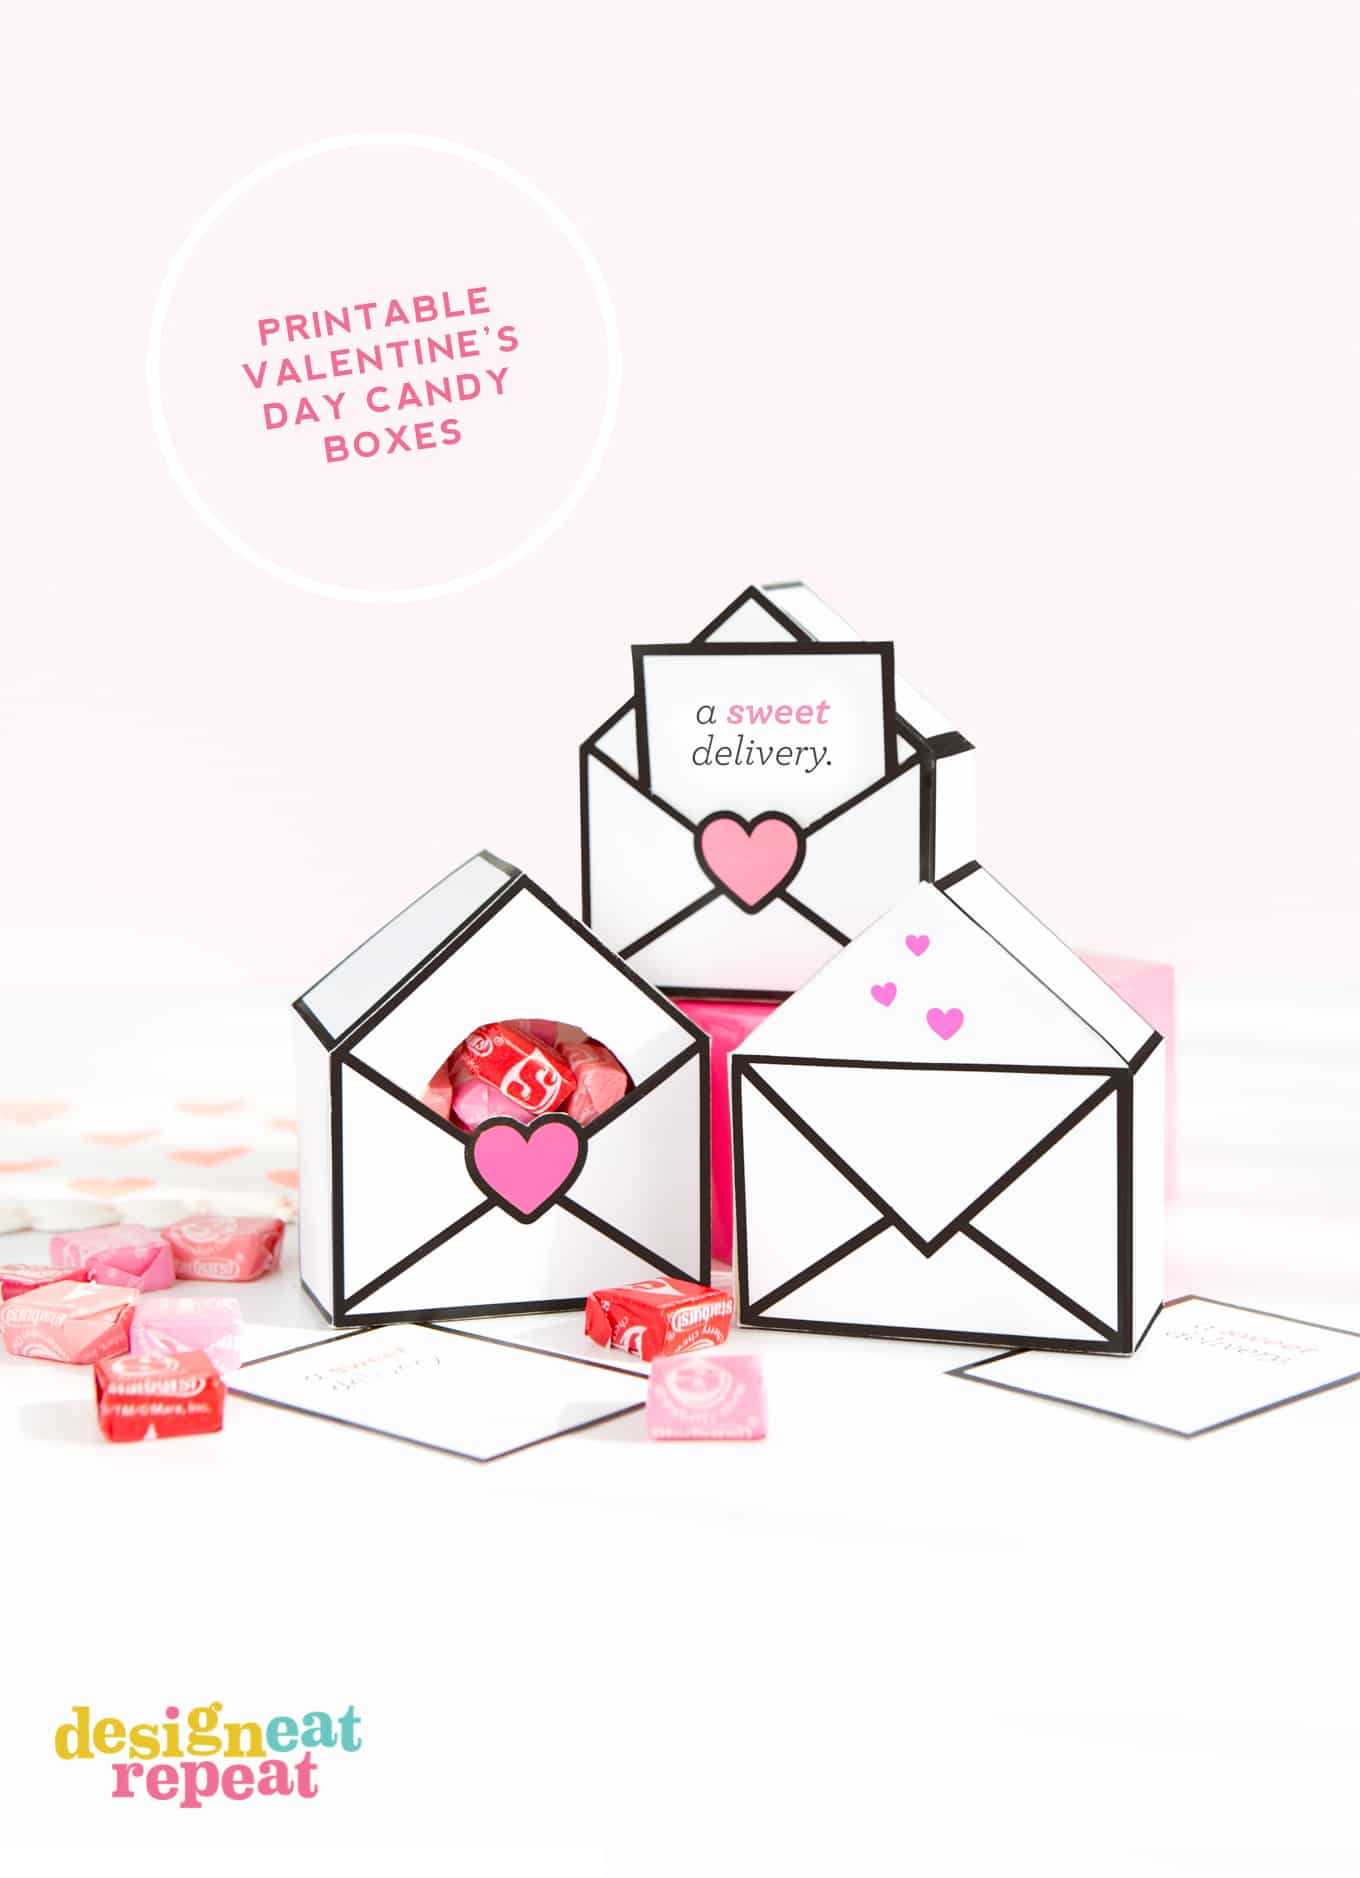 Fun & interactive printable Valentines gift boxes - free to download and perfect for candy!